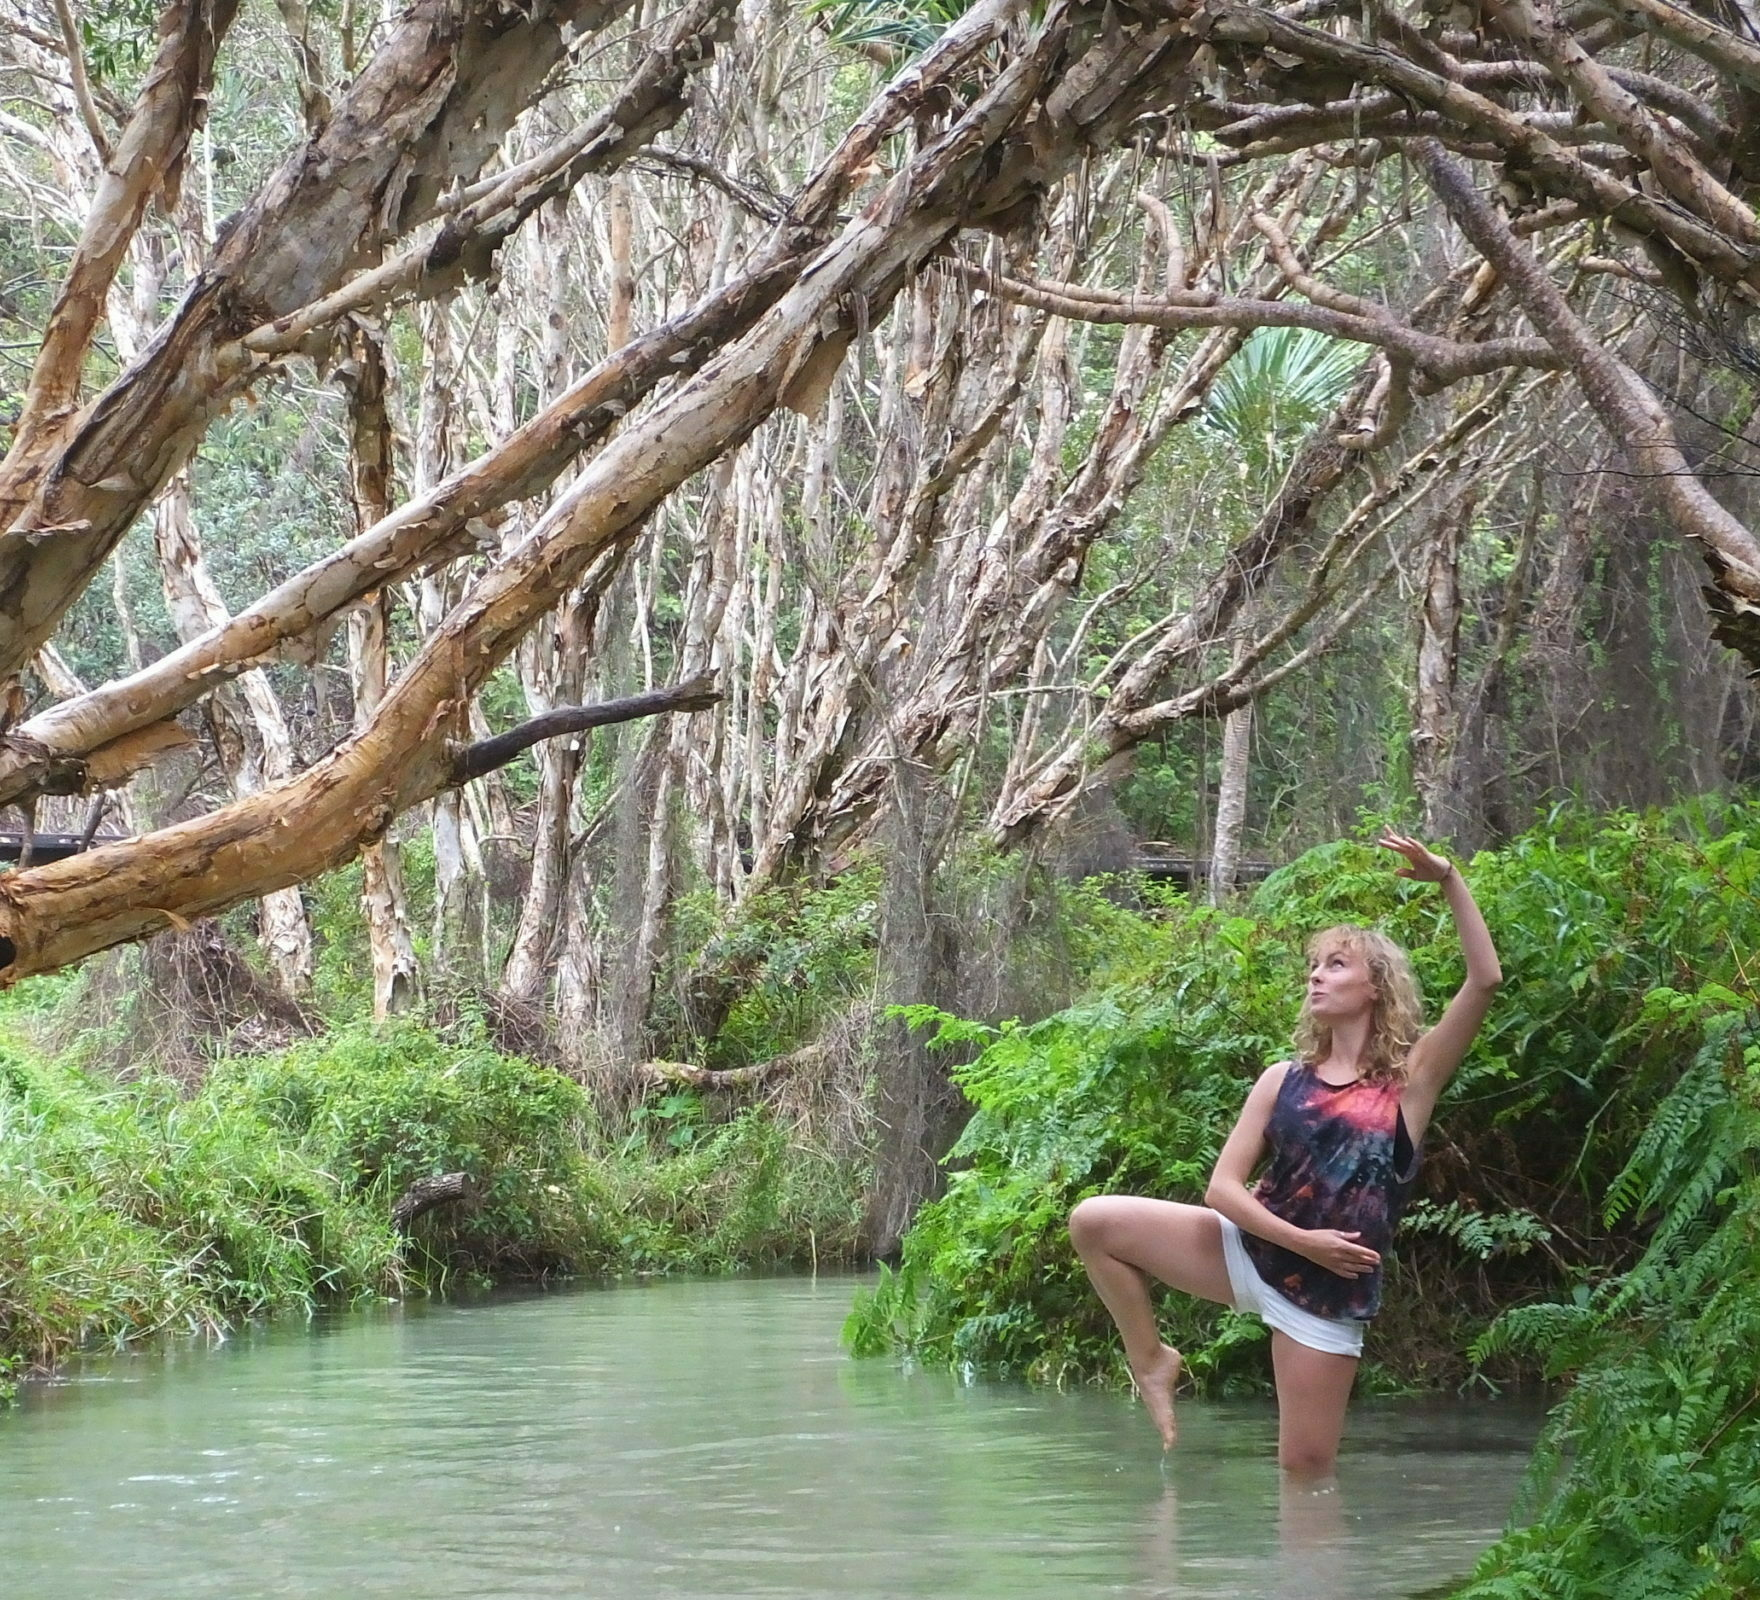 ballerina standing in a river in the jungle